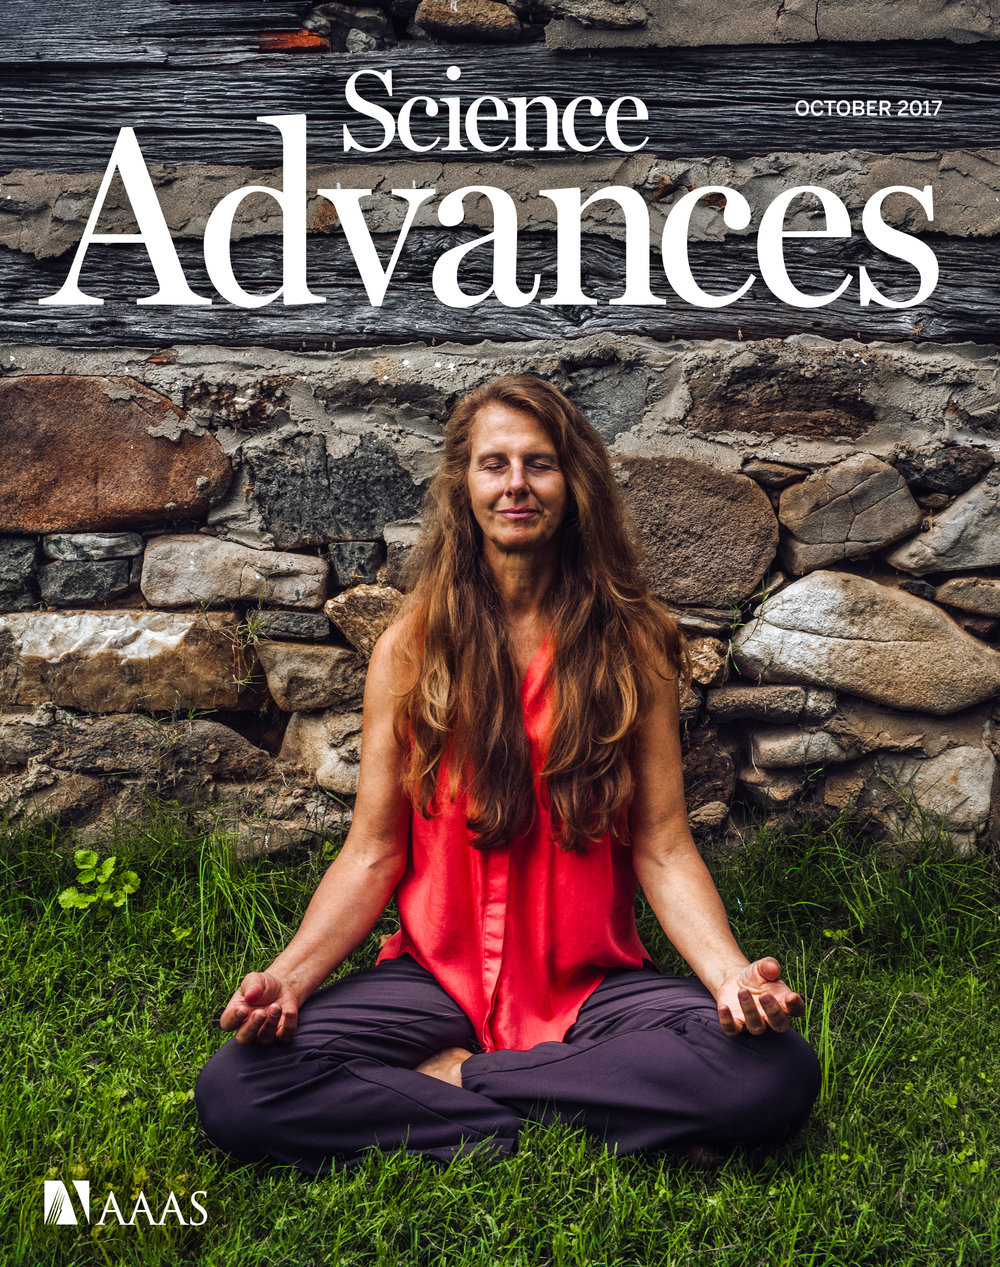 Dr. Deborah Norris on the October, 2017 cover of Science Advances Magazine. (AAAS)